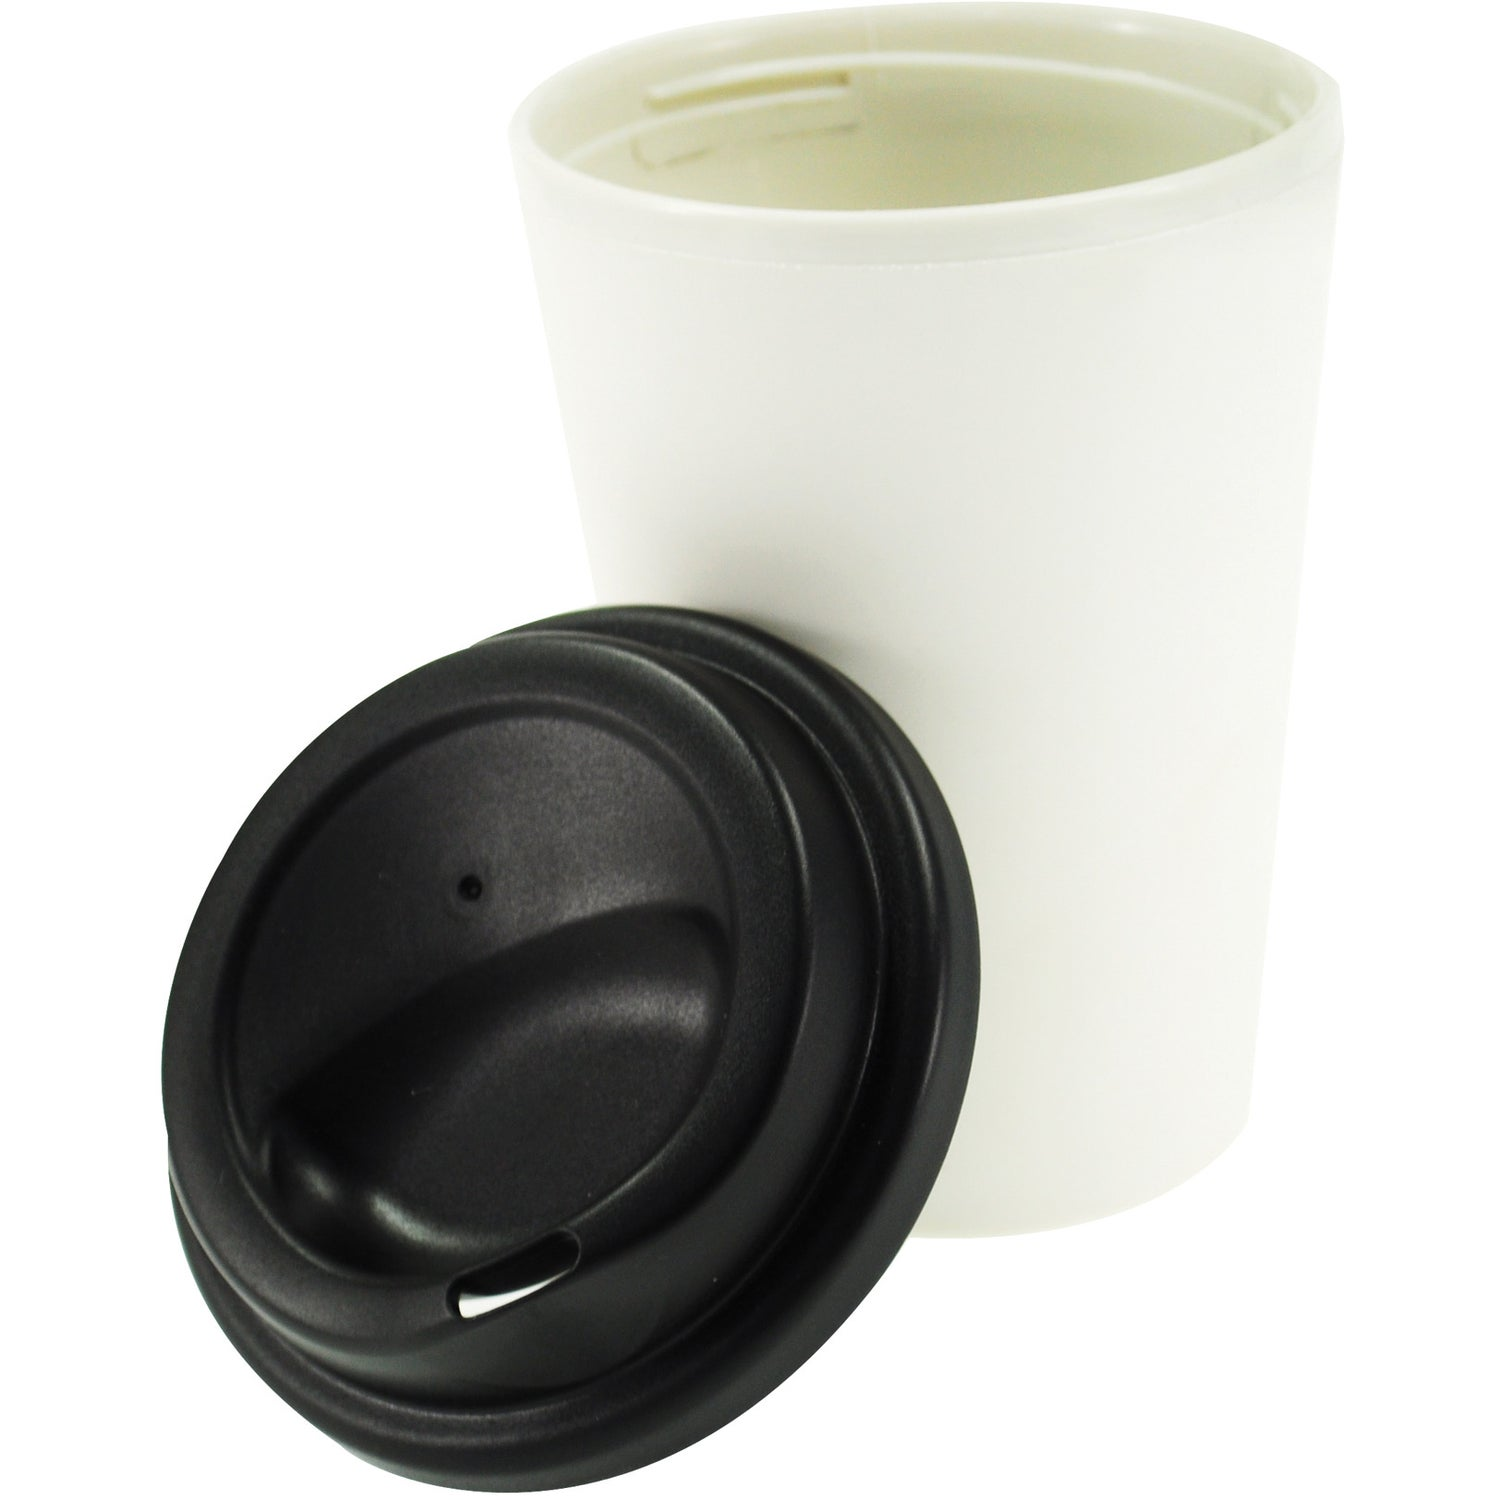 grip n go cup 12 oz promotional travel mugs ea. Black Bedroom Furniture Sets. Home Design Ideas